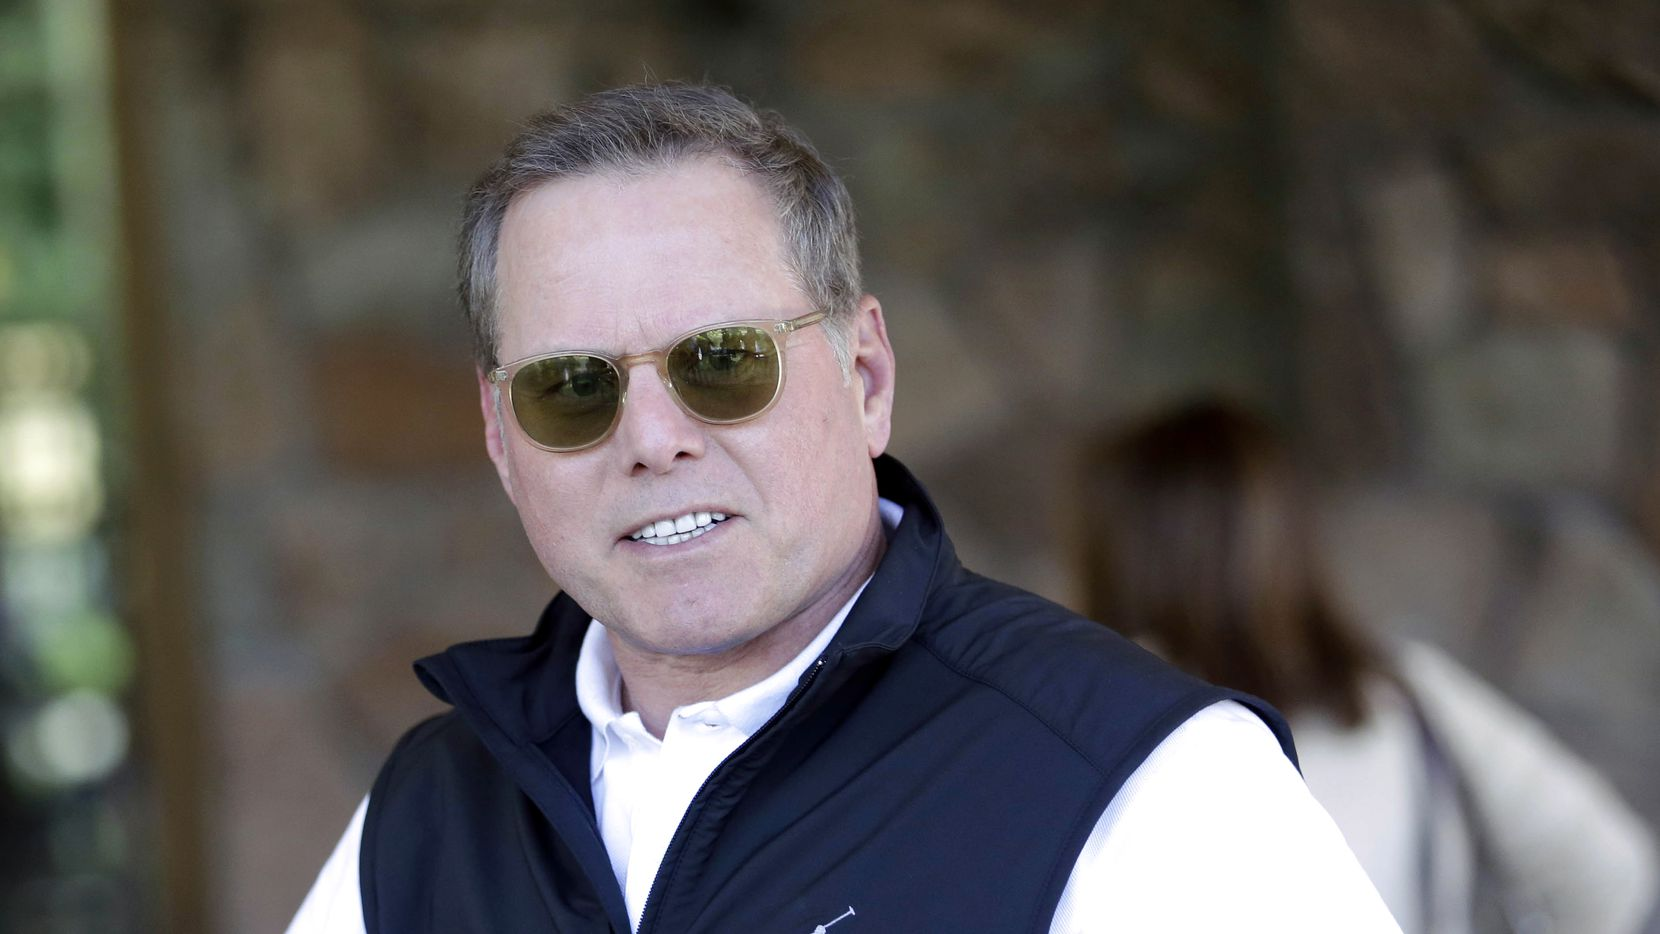 David Zaslav is known for being energetic and persistent. He does not give up easily.